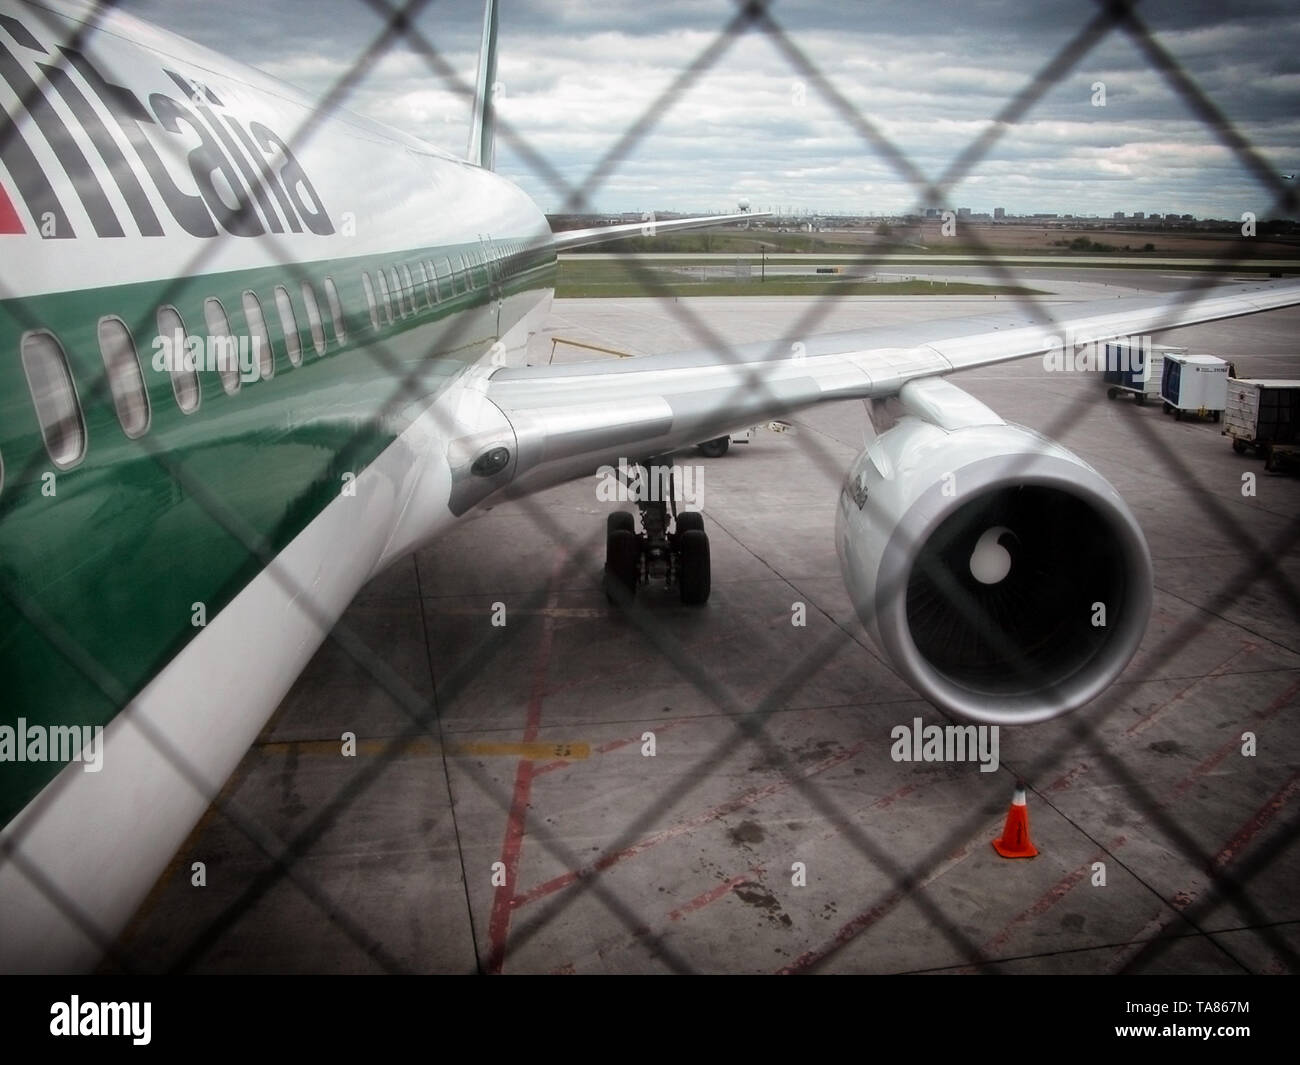 Airplane Boeing 767 on boarding - Stock Image